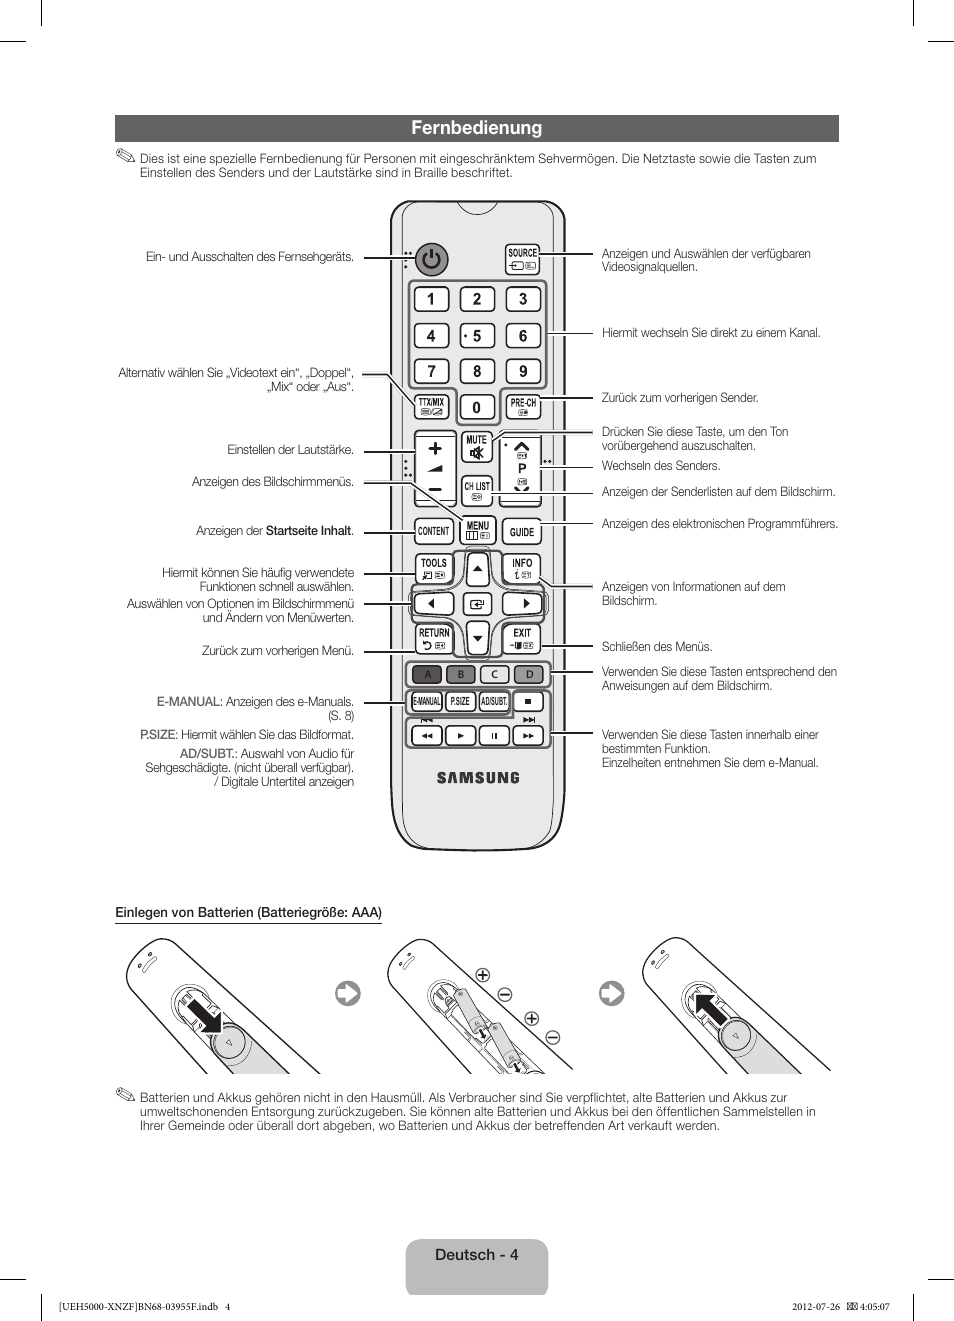 Fernbedienung | Samsung UE40EH5000W User Manual | Page 28 / 49